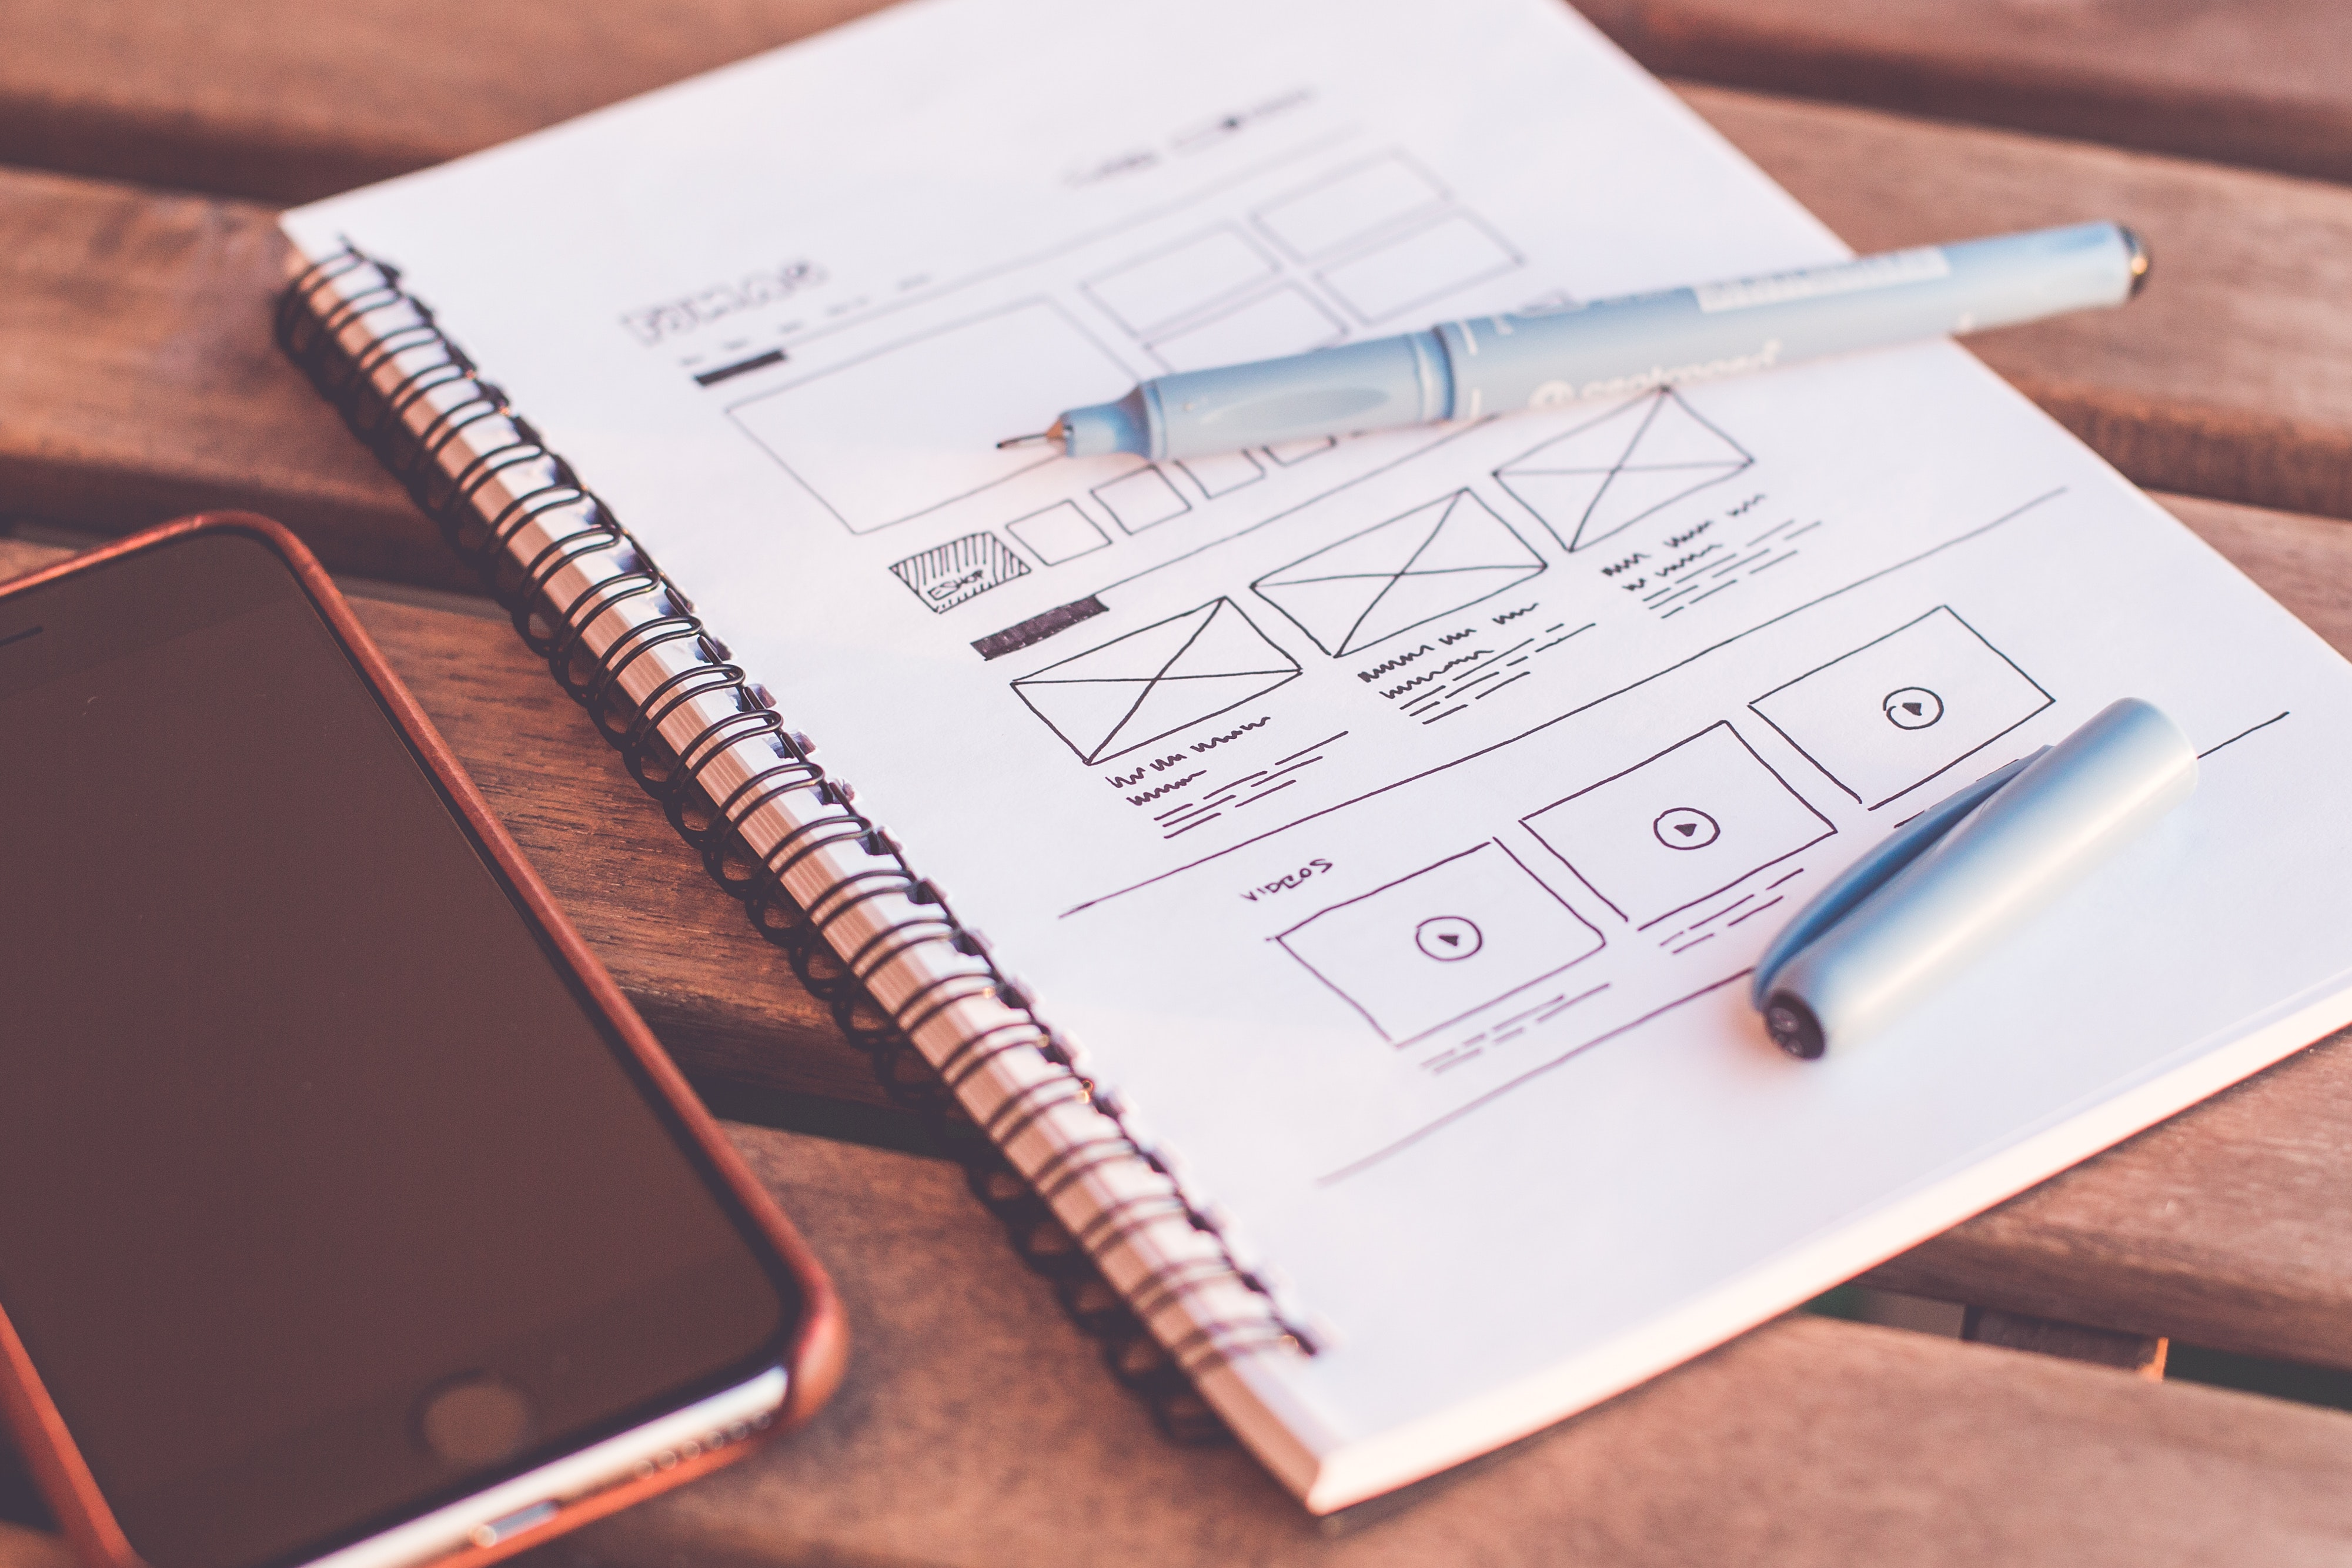 Wireframe drawing of a website next to a phone. Shand & Co. does responsive web design and development so that your website looks great regardless of what device you view it ion.